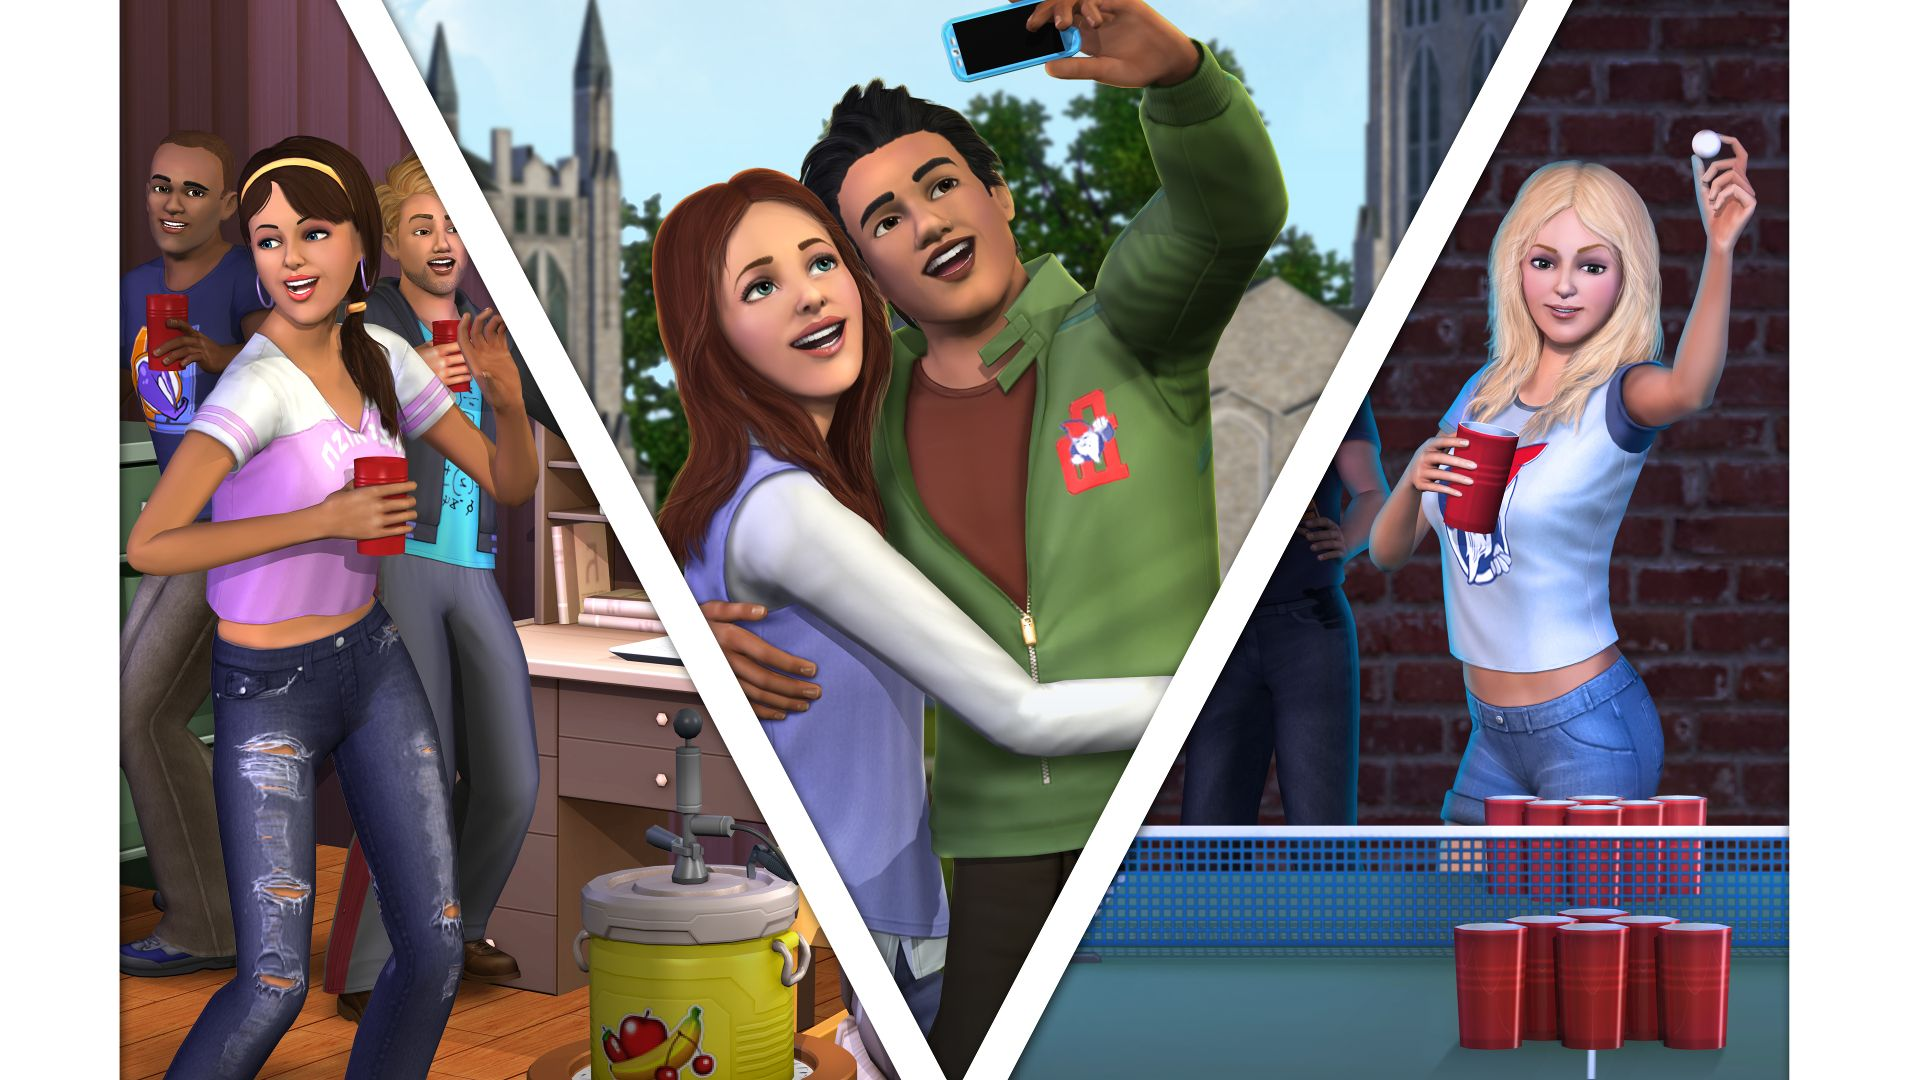 How to install the sims 3 starter pack on pc - How To Install The Sims 3 Starter Pack On Pc 35